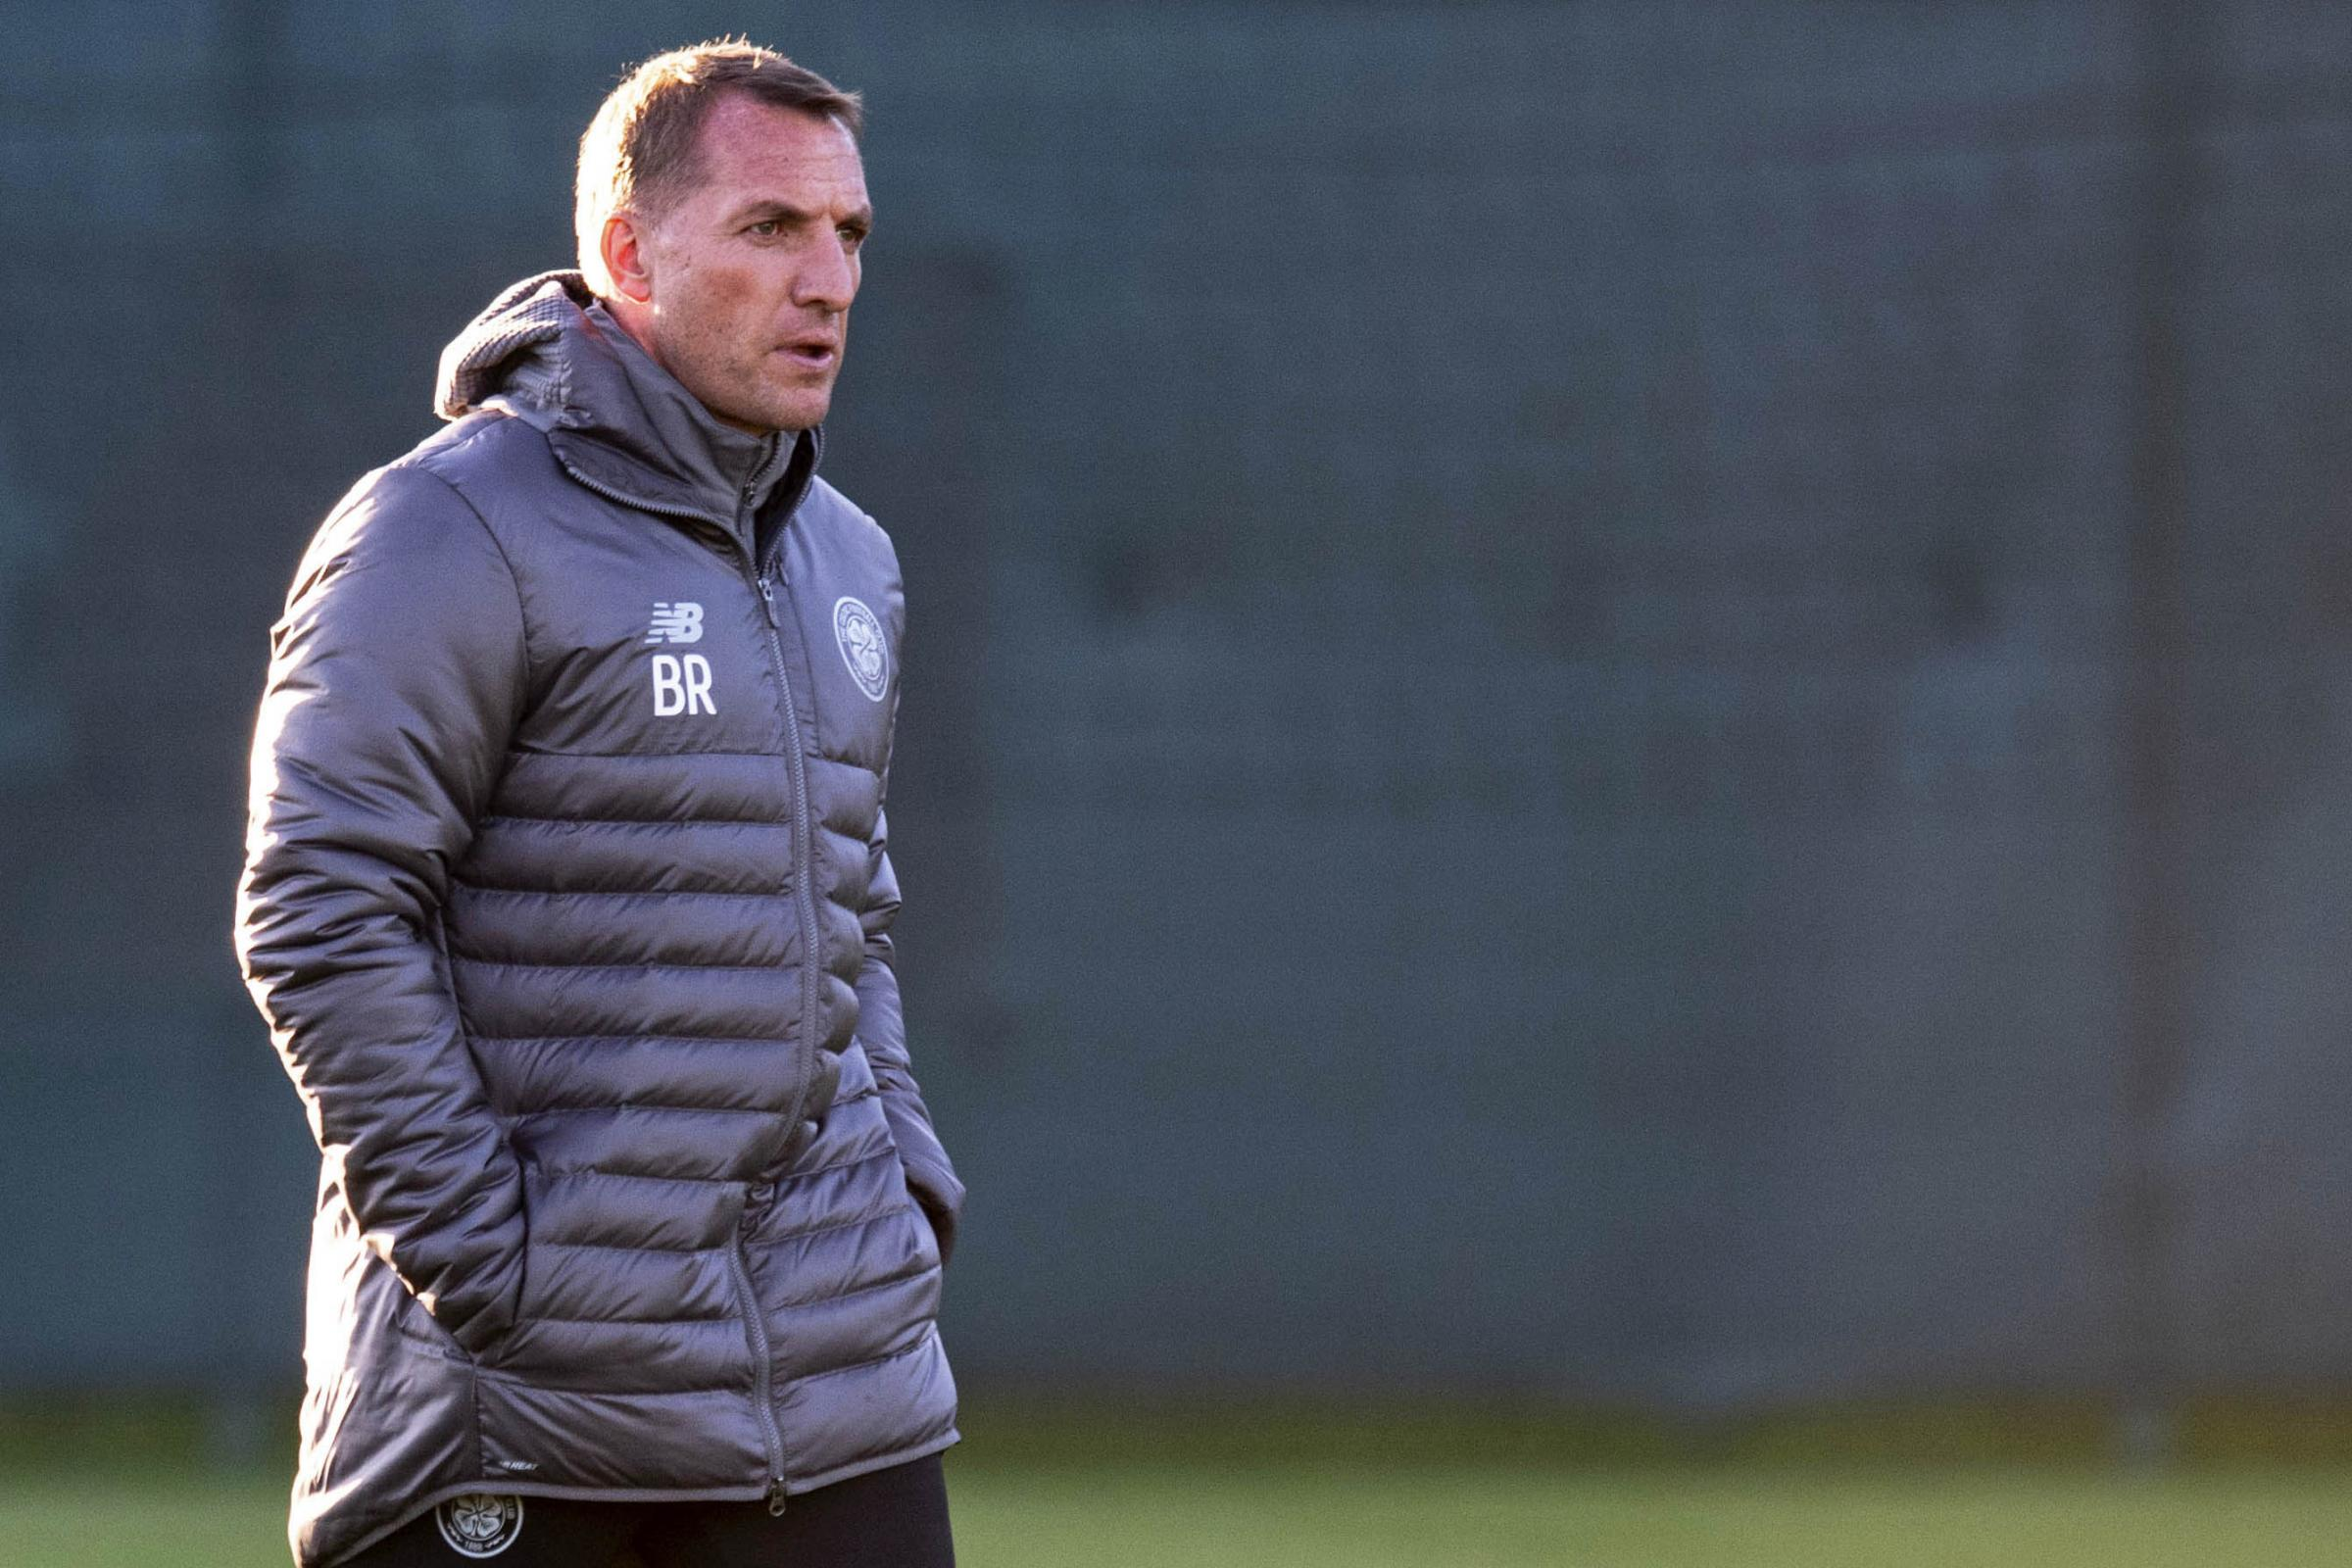 Celtic manager Brendan Rodgers content to keep putting his faith in youth despite arrival of big names at Rangers